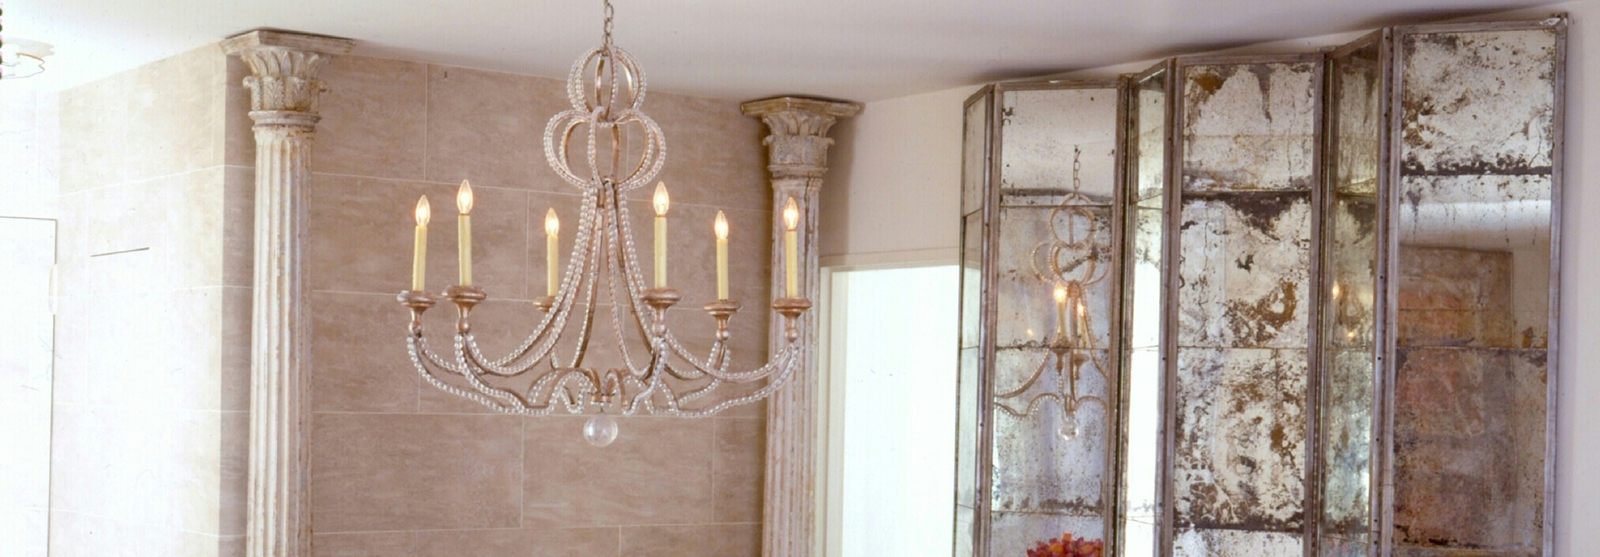 Niermann Weeks Lighting, Furniture And Accessories Within Newest Antique Mirror Chandelier (View 7 of 15)